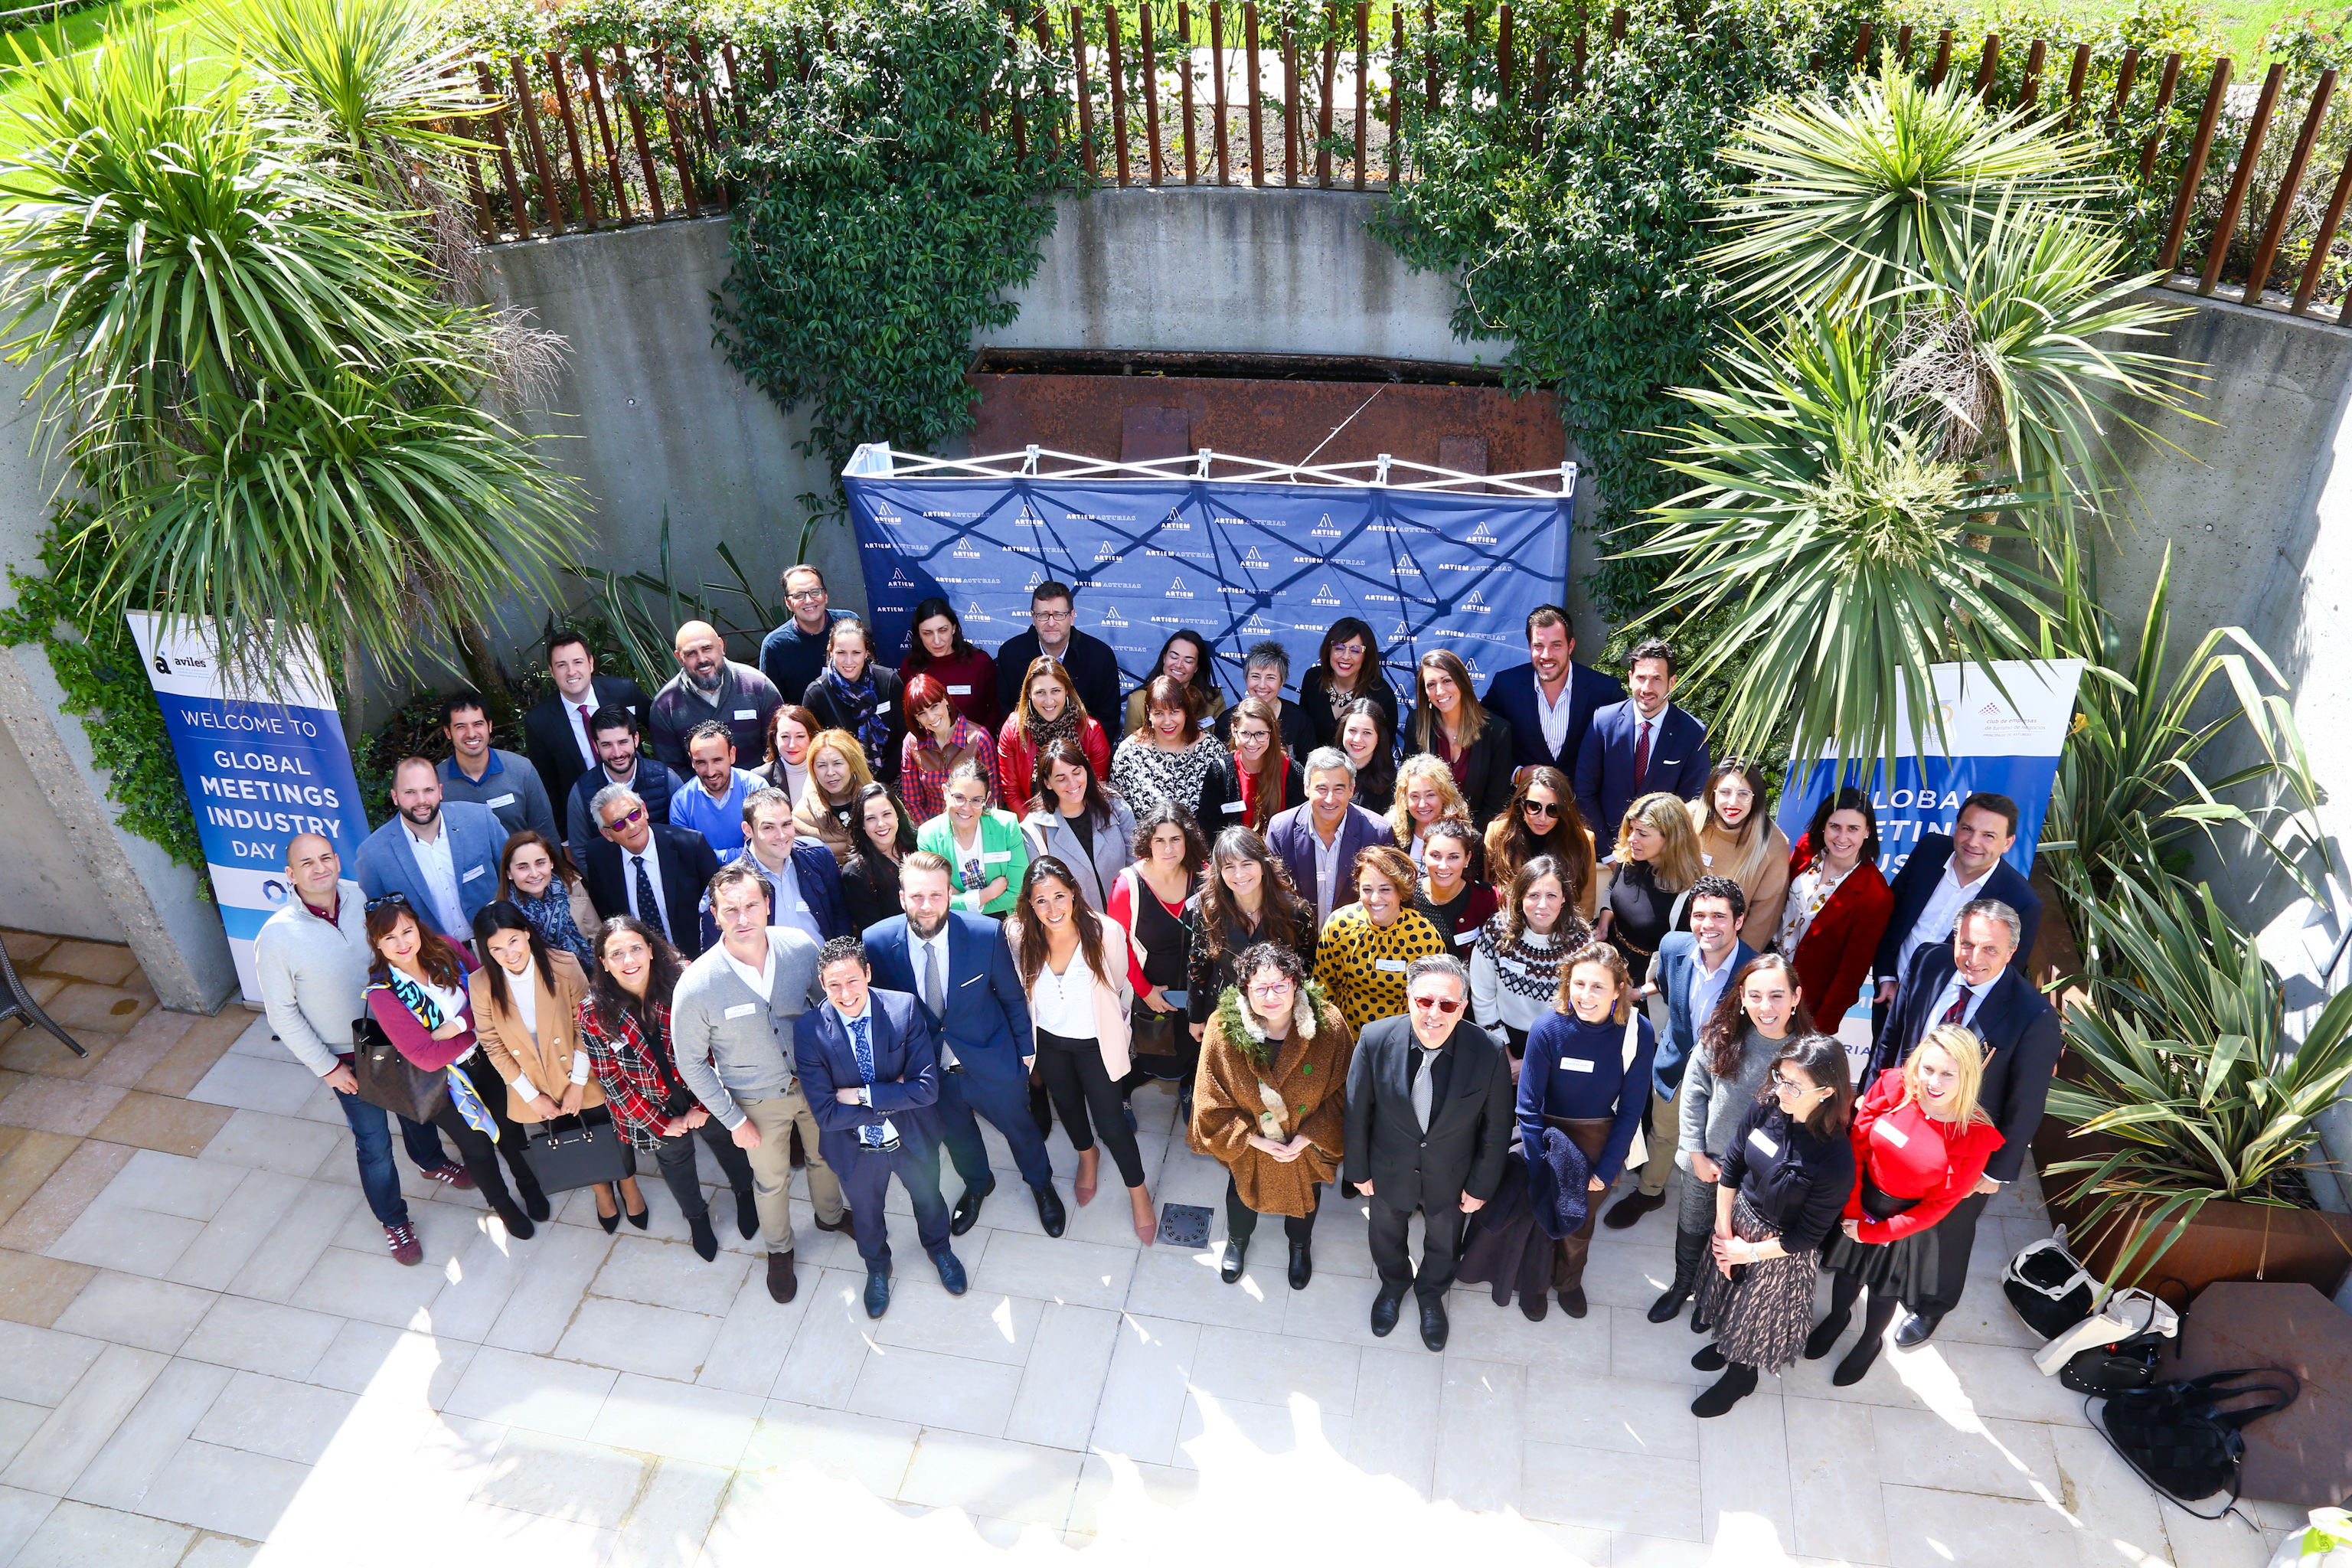 CELEBRACIÓN EN ASTURIAS DEL GLOBAL MEETINGS INDUSTRY DAY 2019